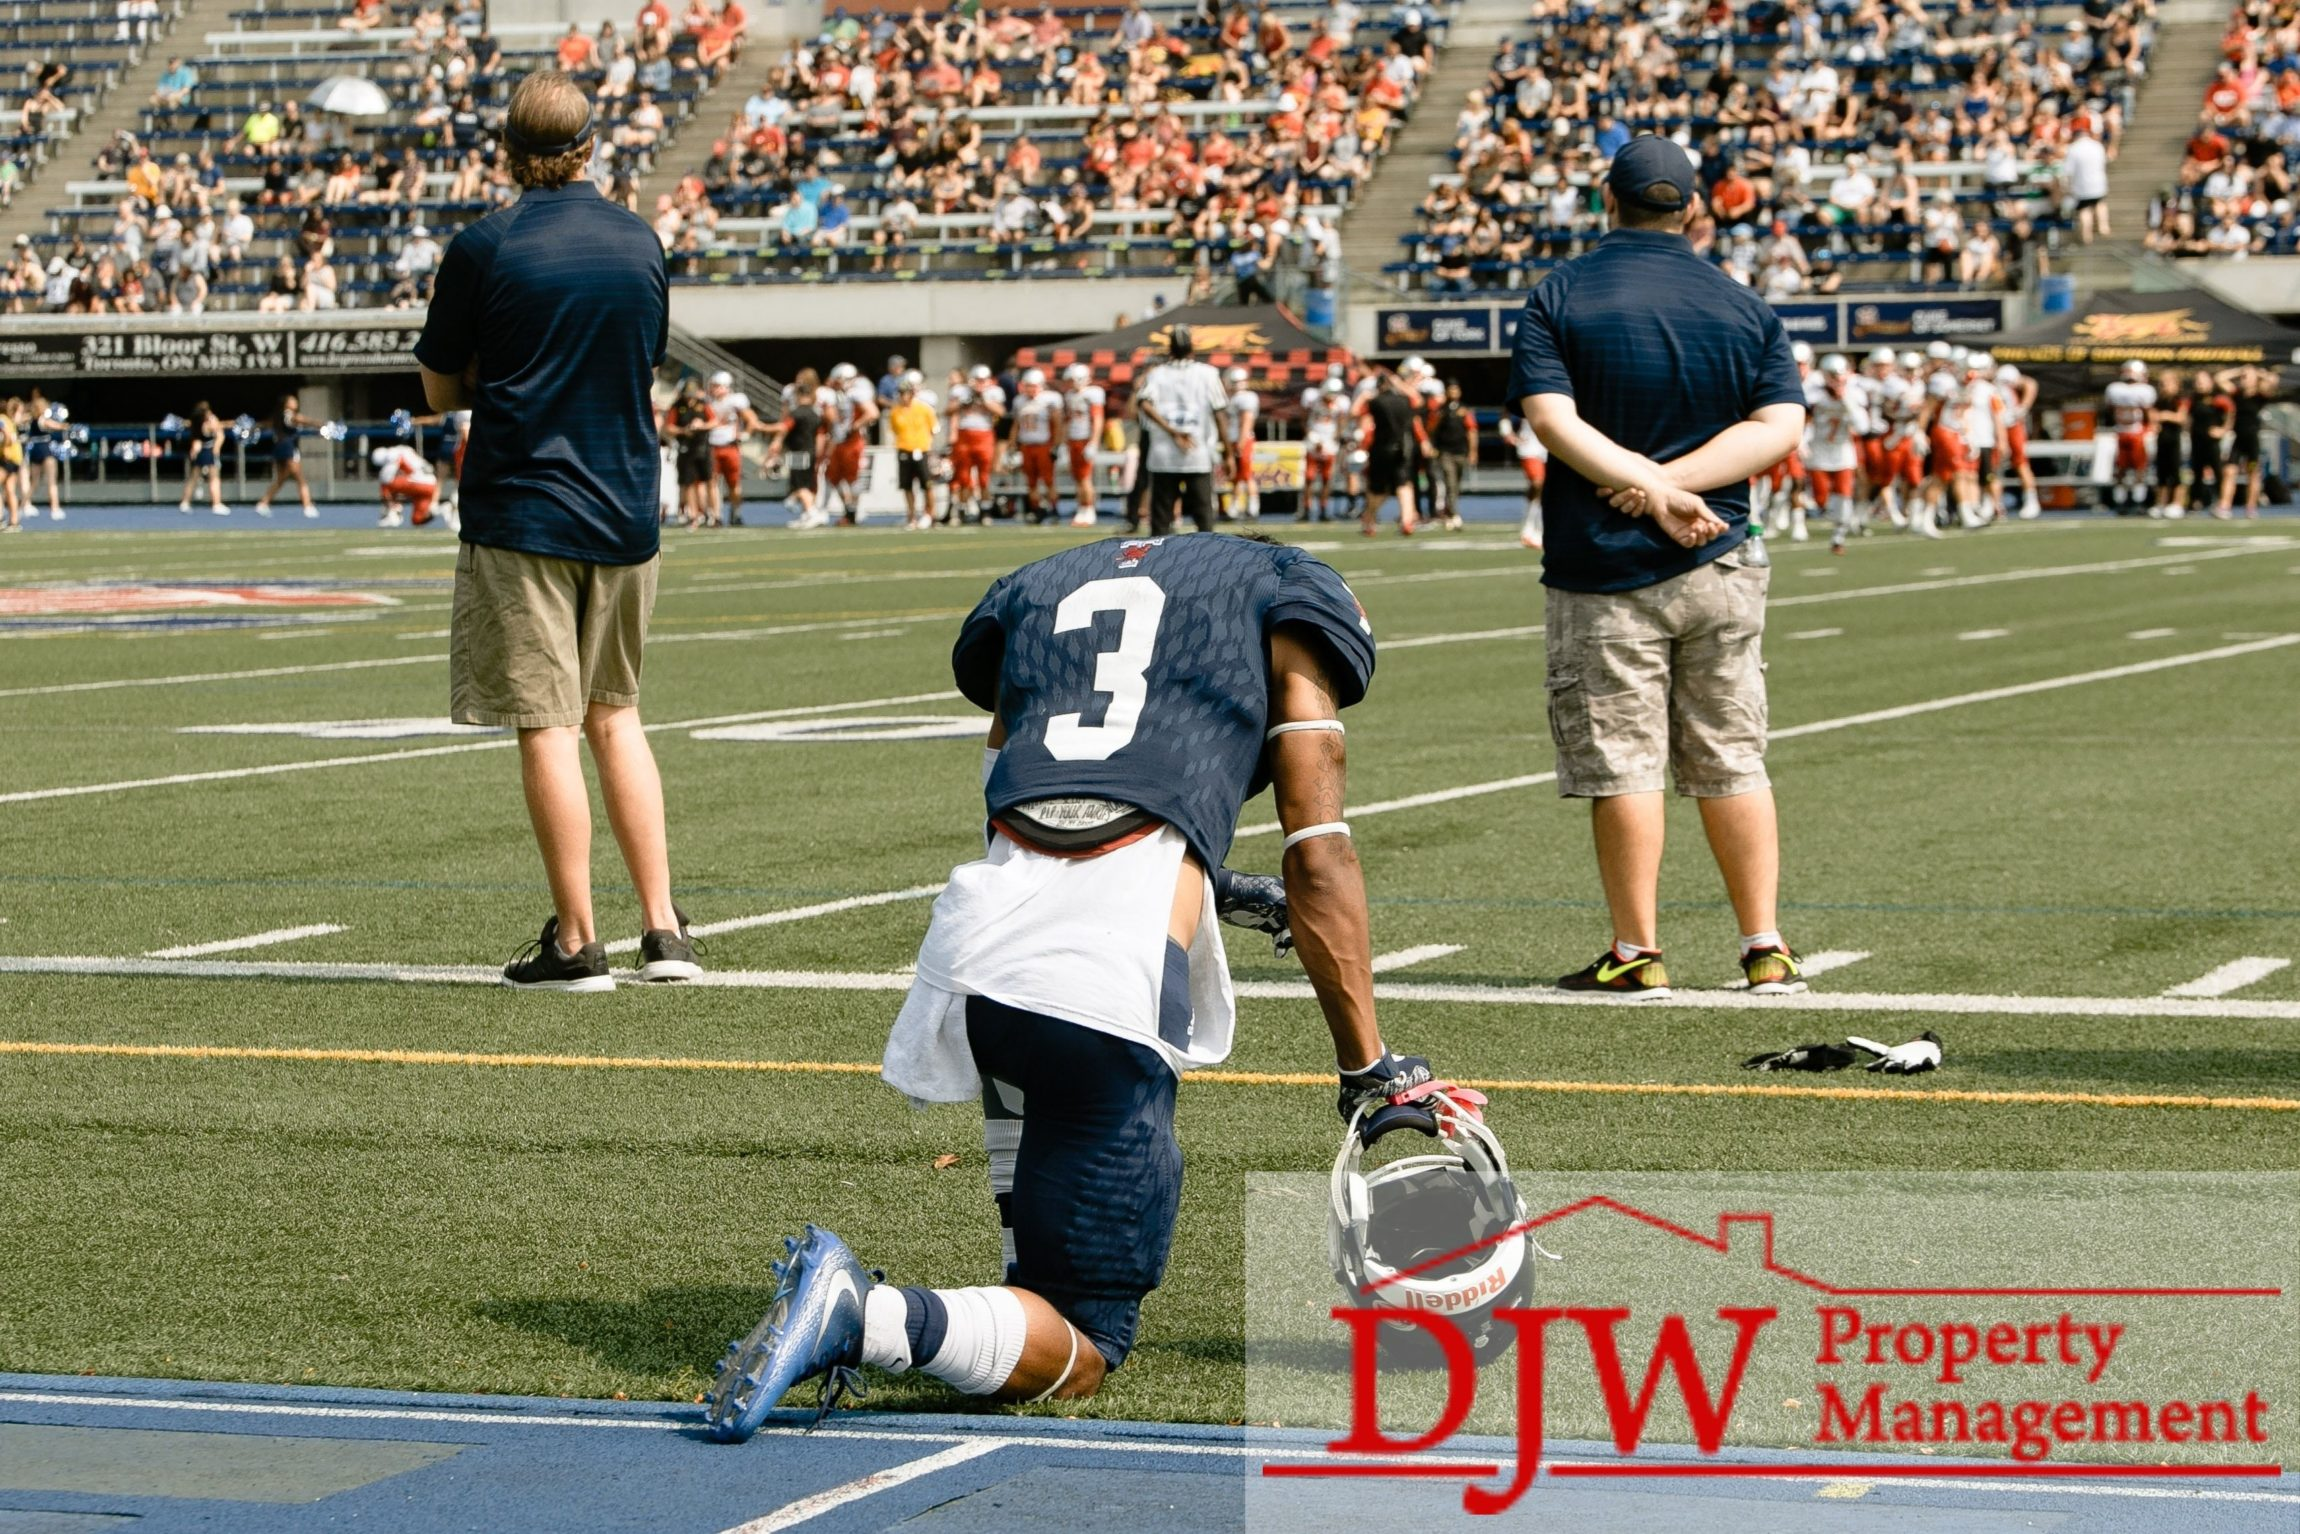 Football player taking a knee on the sidelines.